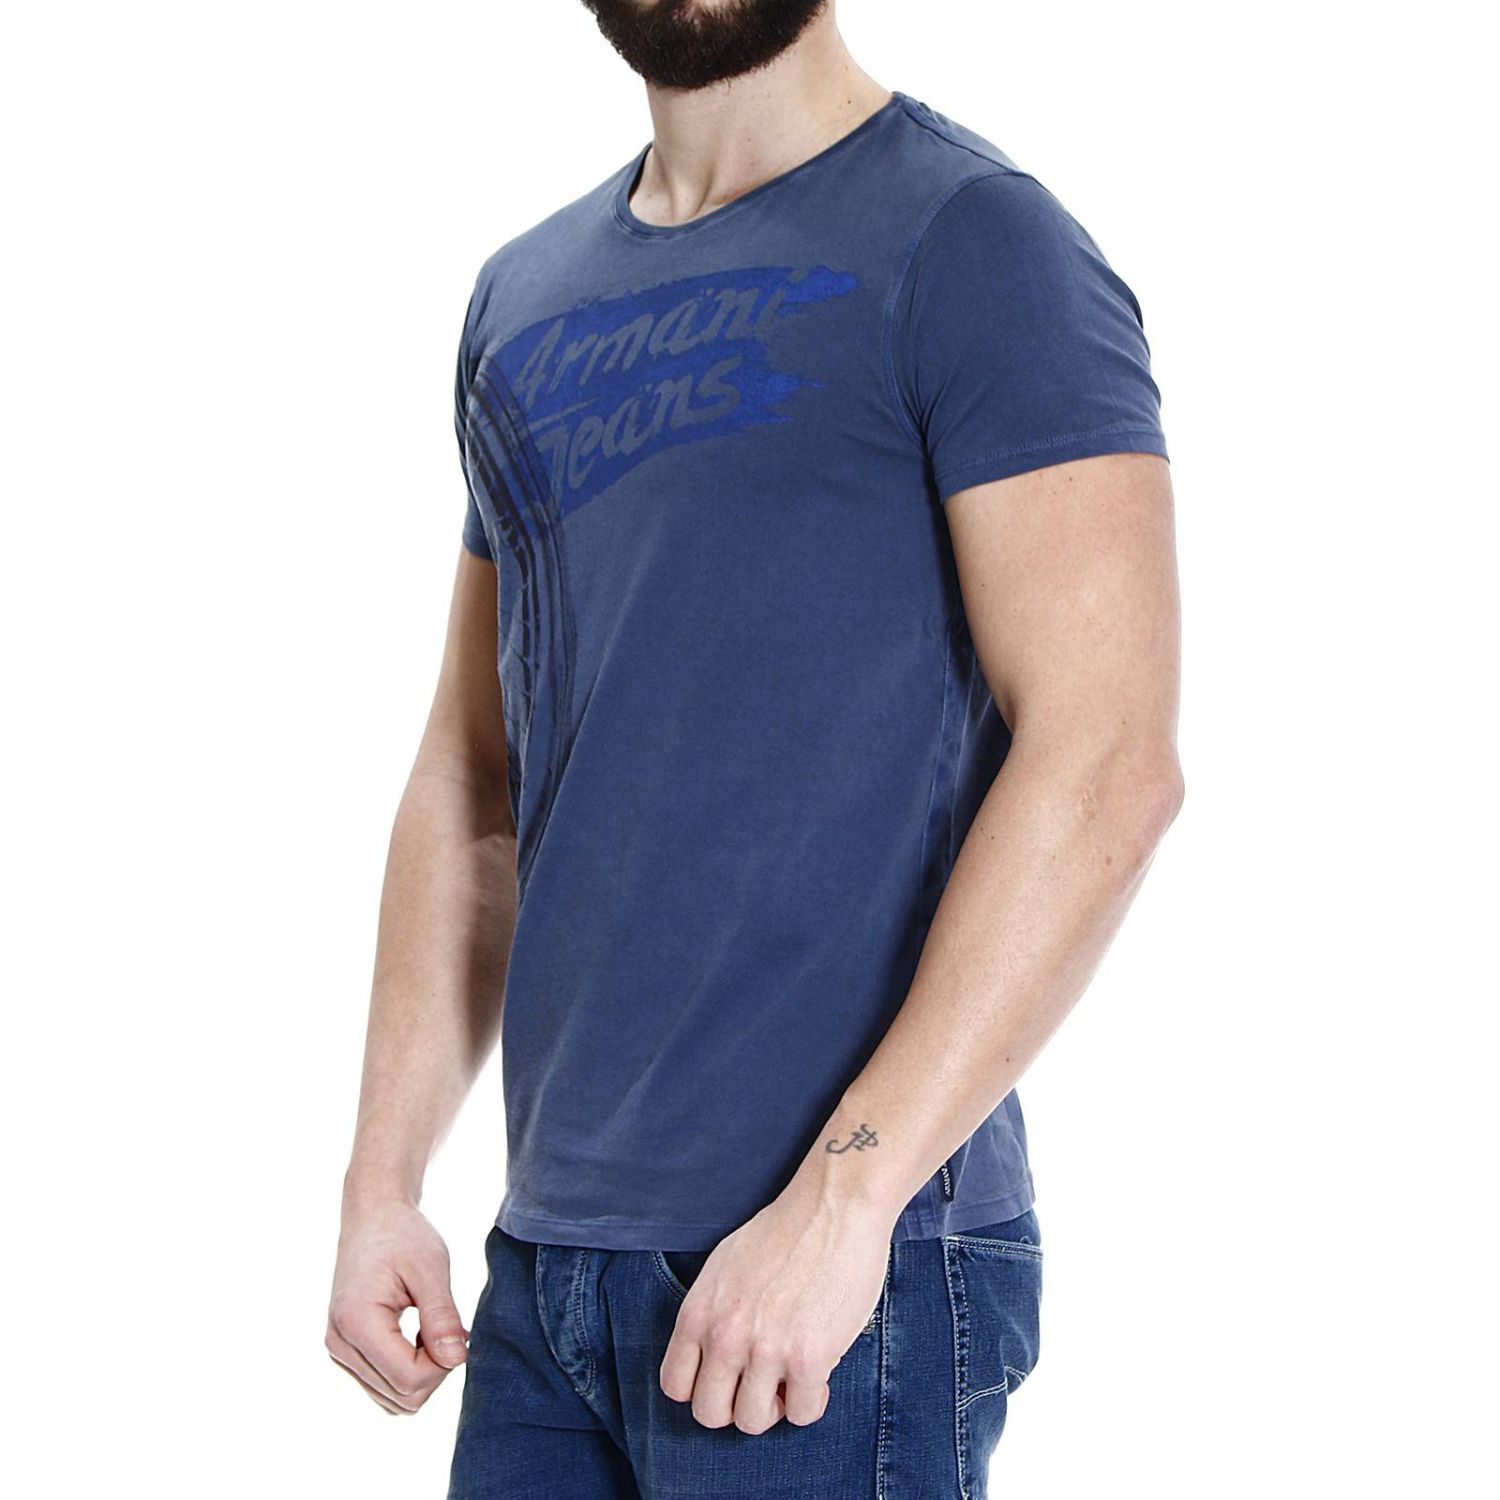 Giorgio Armani T Shirt Half Sleeve Crew Neck Cotton Washed